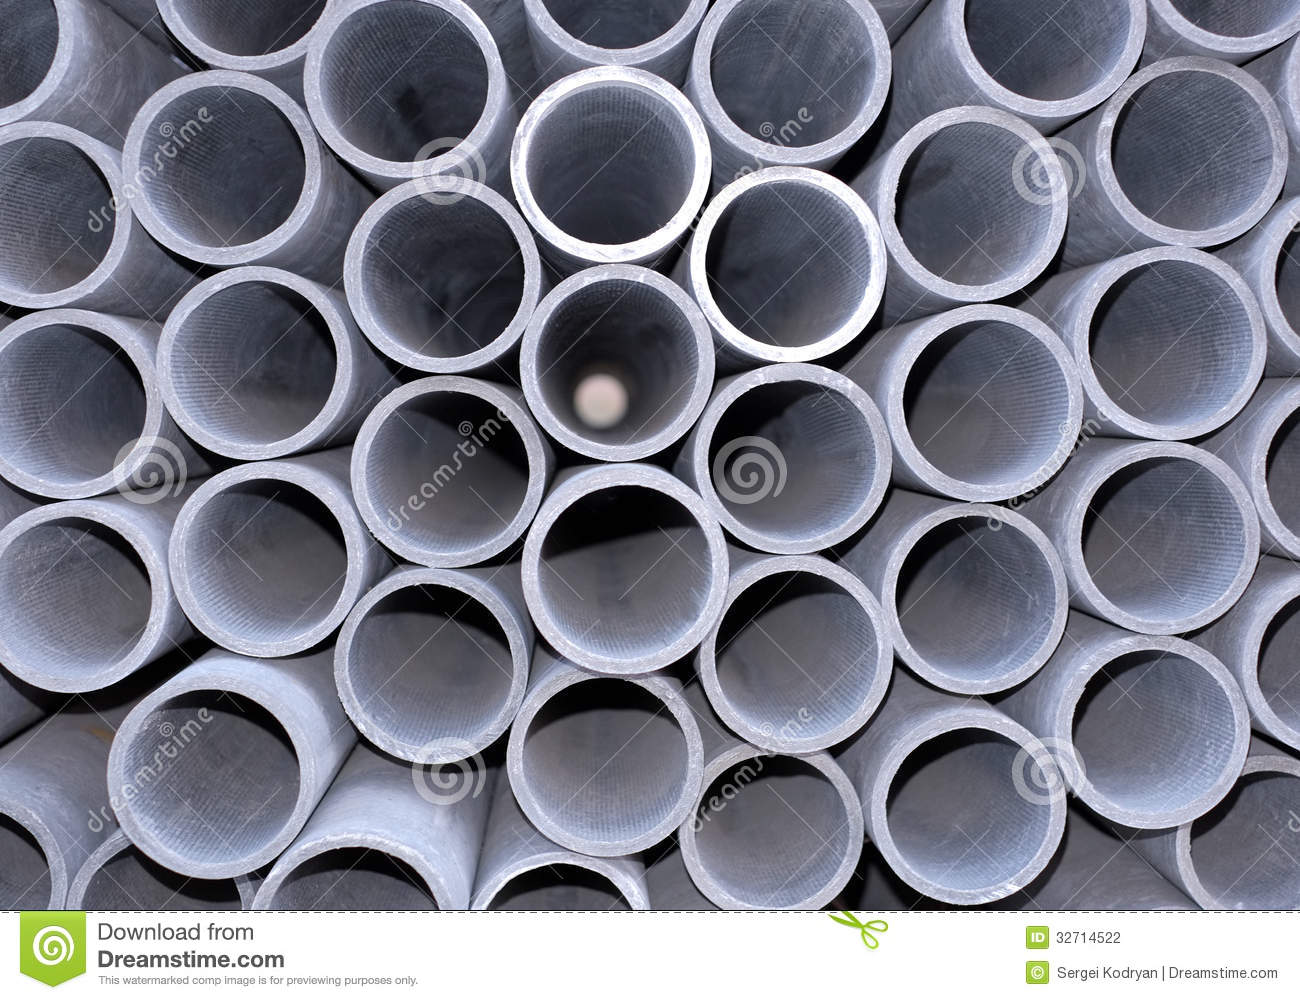 Cement-asbestos pipes: prices and reviews 27